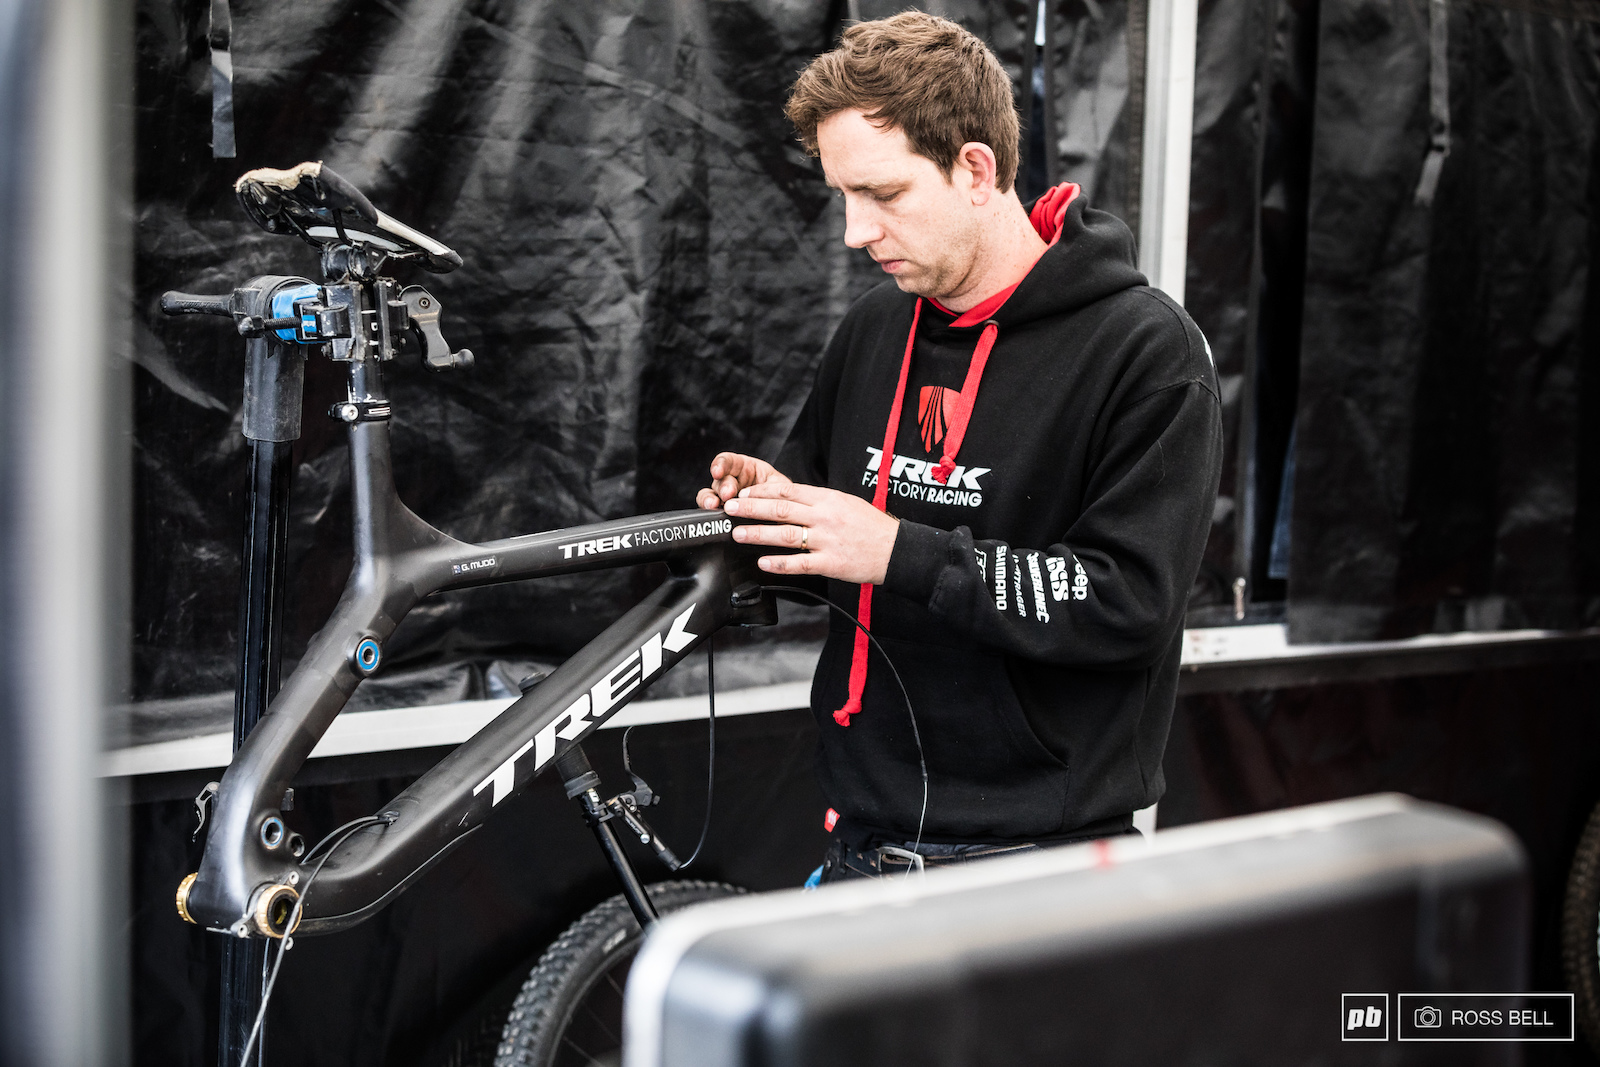 Graeme Mudd is aboard the new Trek 29er this weekend flying the flag for the team in the elite men as Gee Atherton recovers from his dislocated hip.